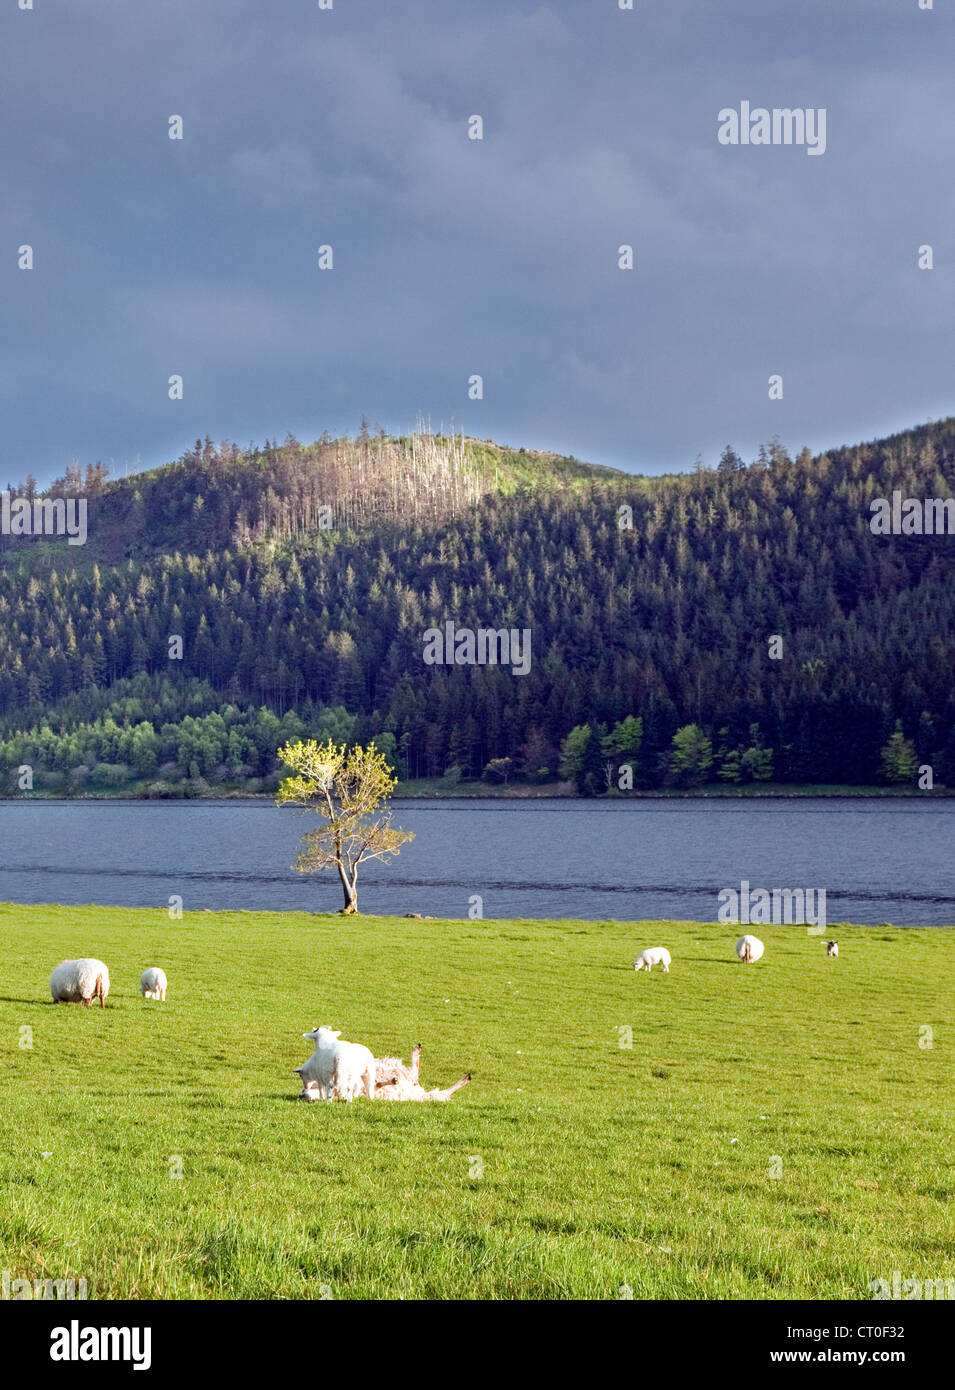 Sheep grazing lit by late evening light on the lake shore of Llyn Cwellyn in the Nant-y-Betws Valley, Snowdonia - Stock Image